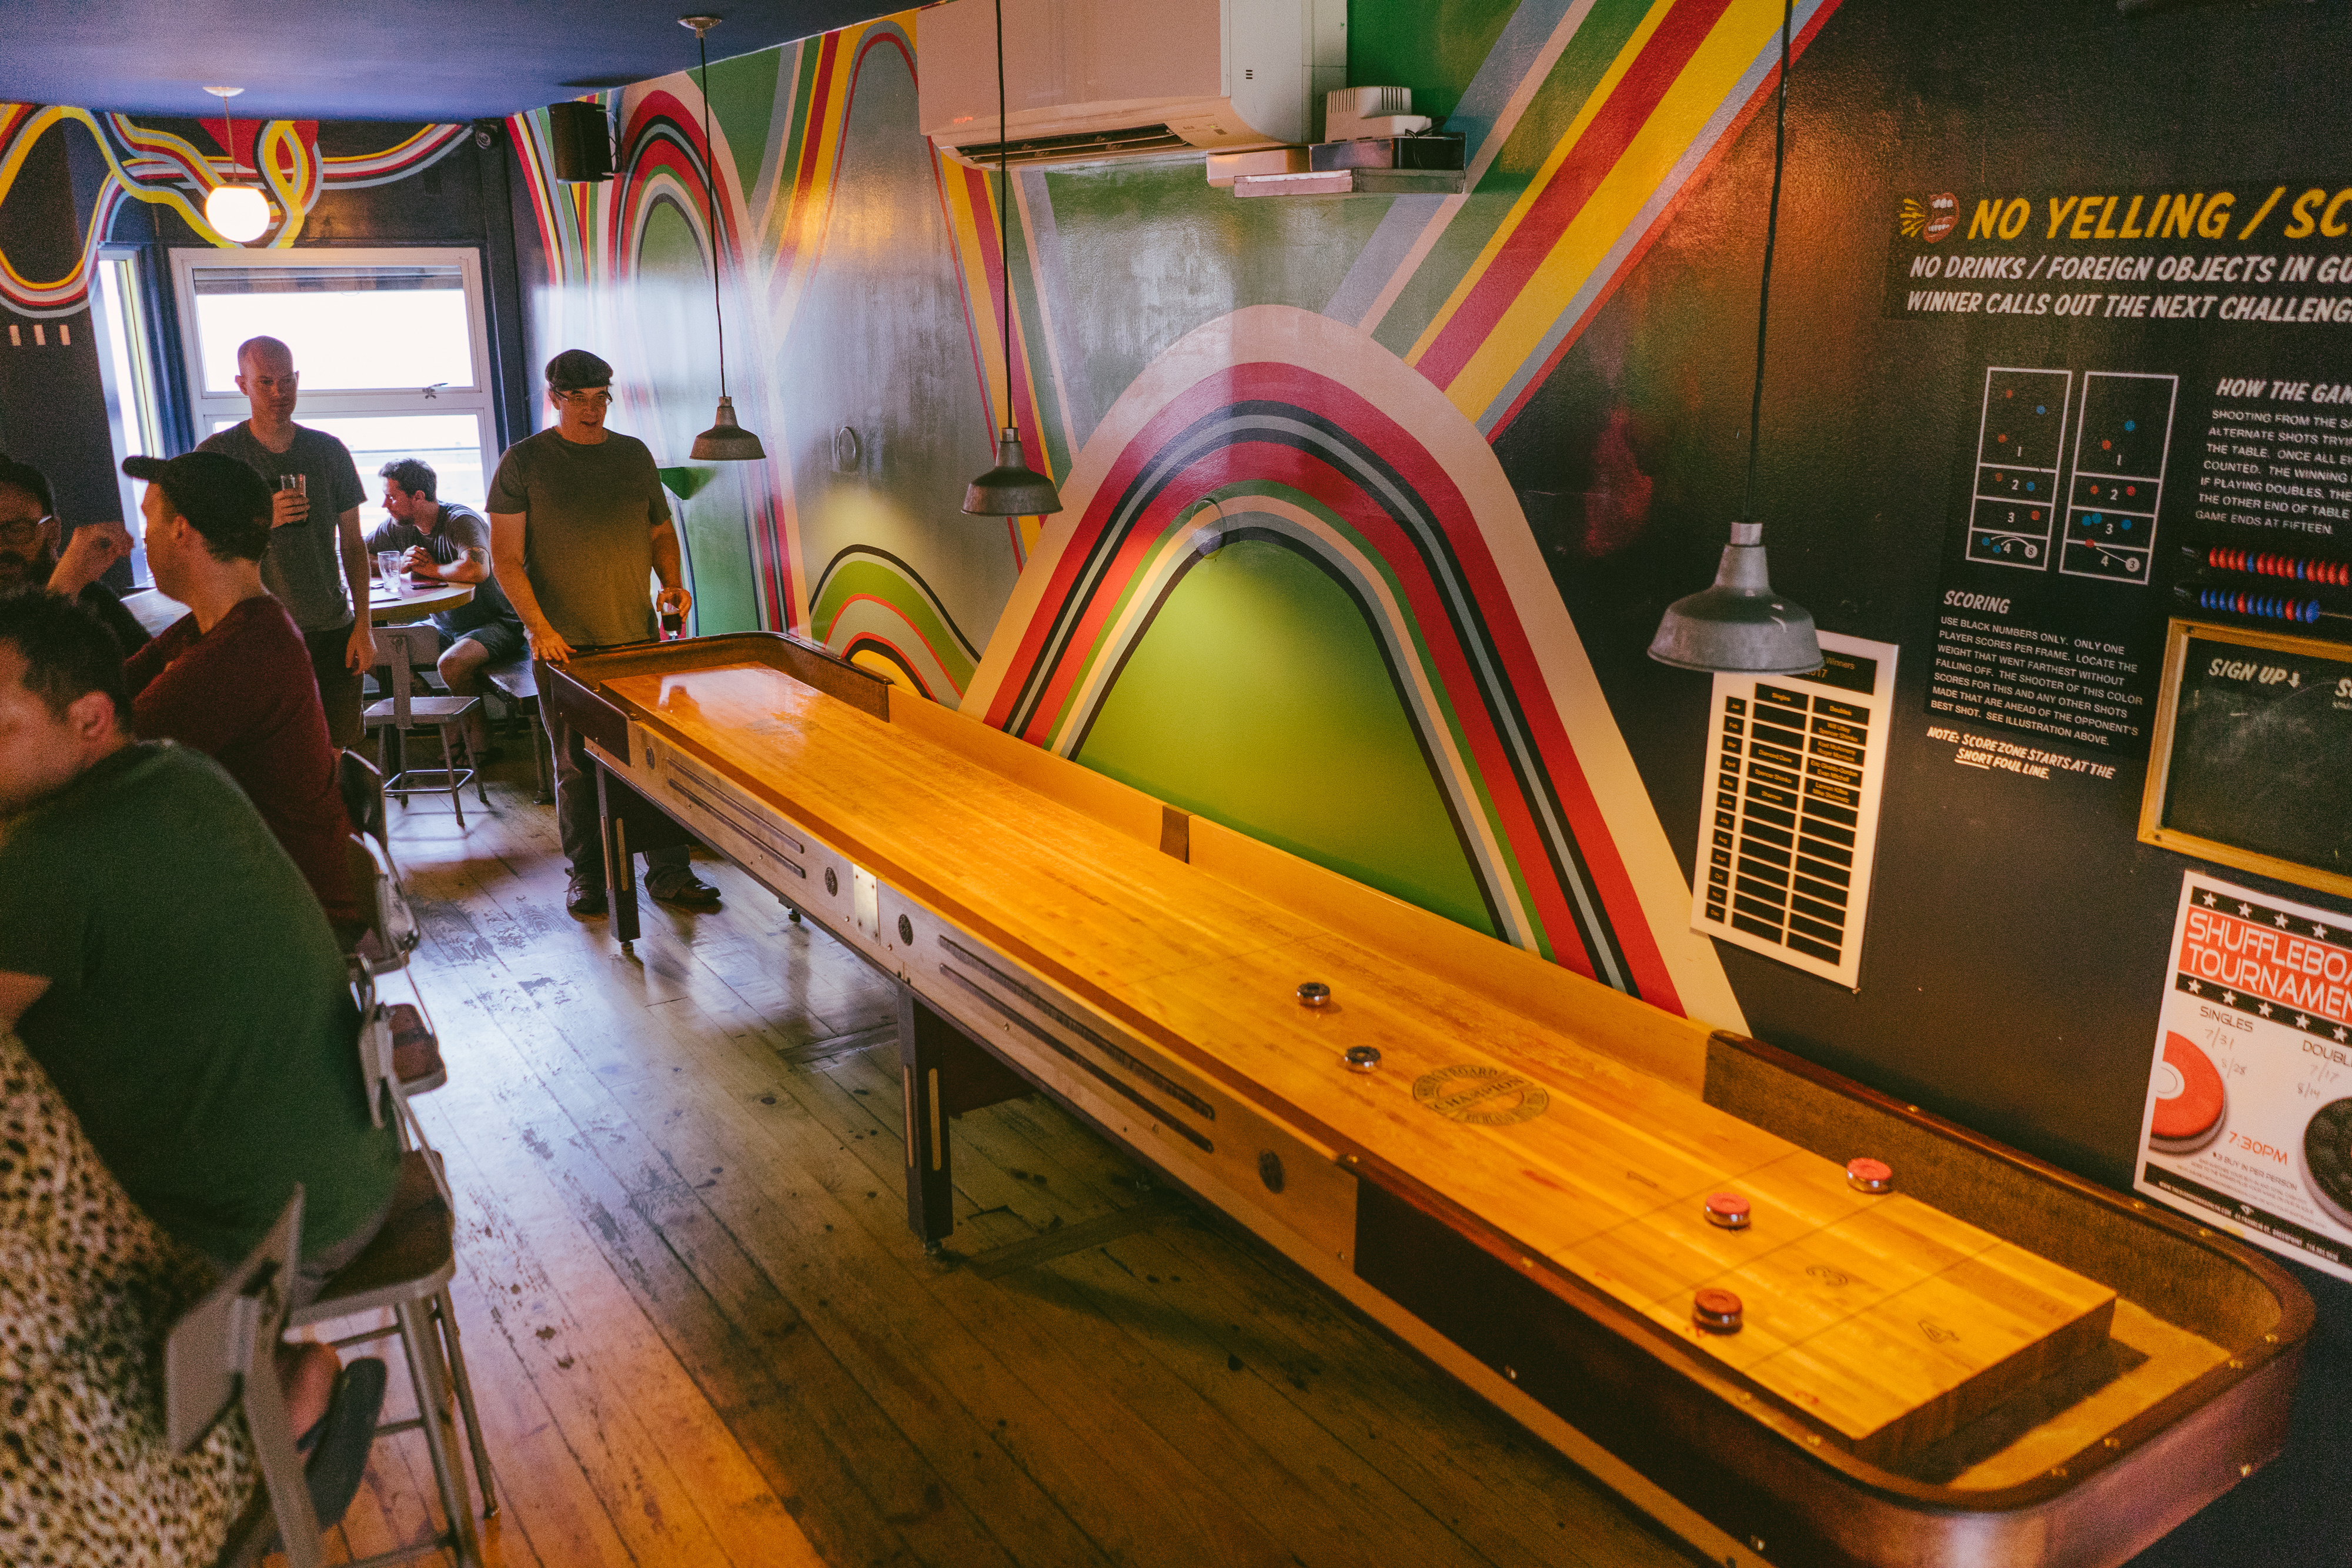 18 Great NYC Bars With Activities - New York - The Infatuation